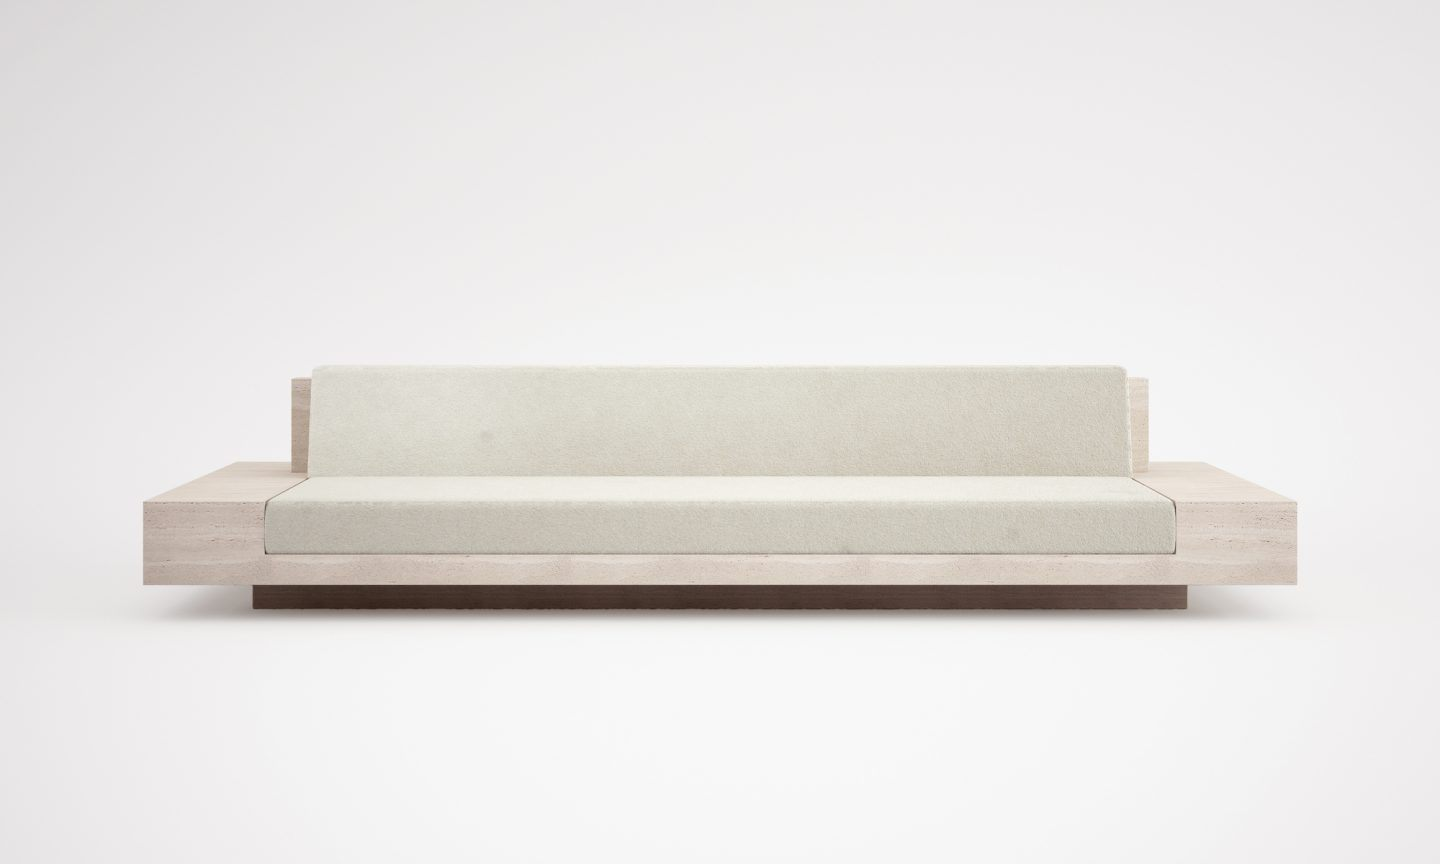 Martin Massés Gallipoli Sofa A Minimal Piece Made From